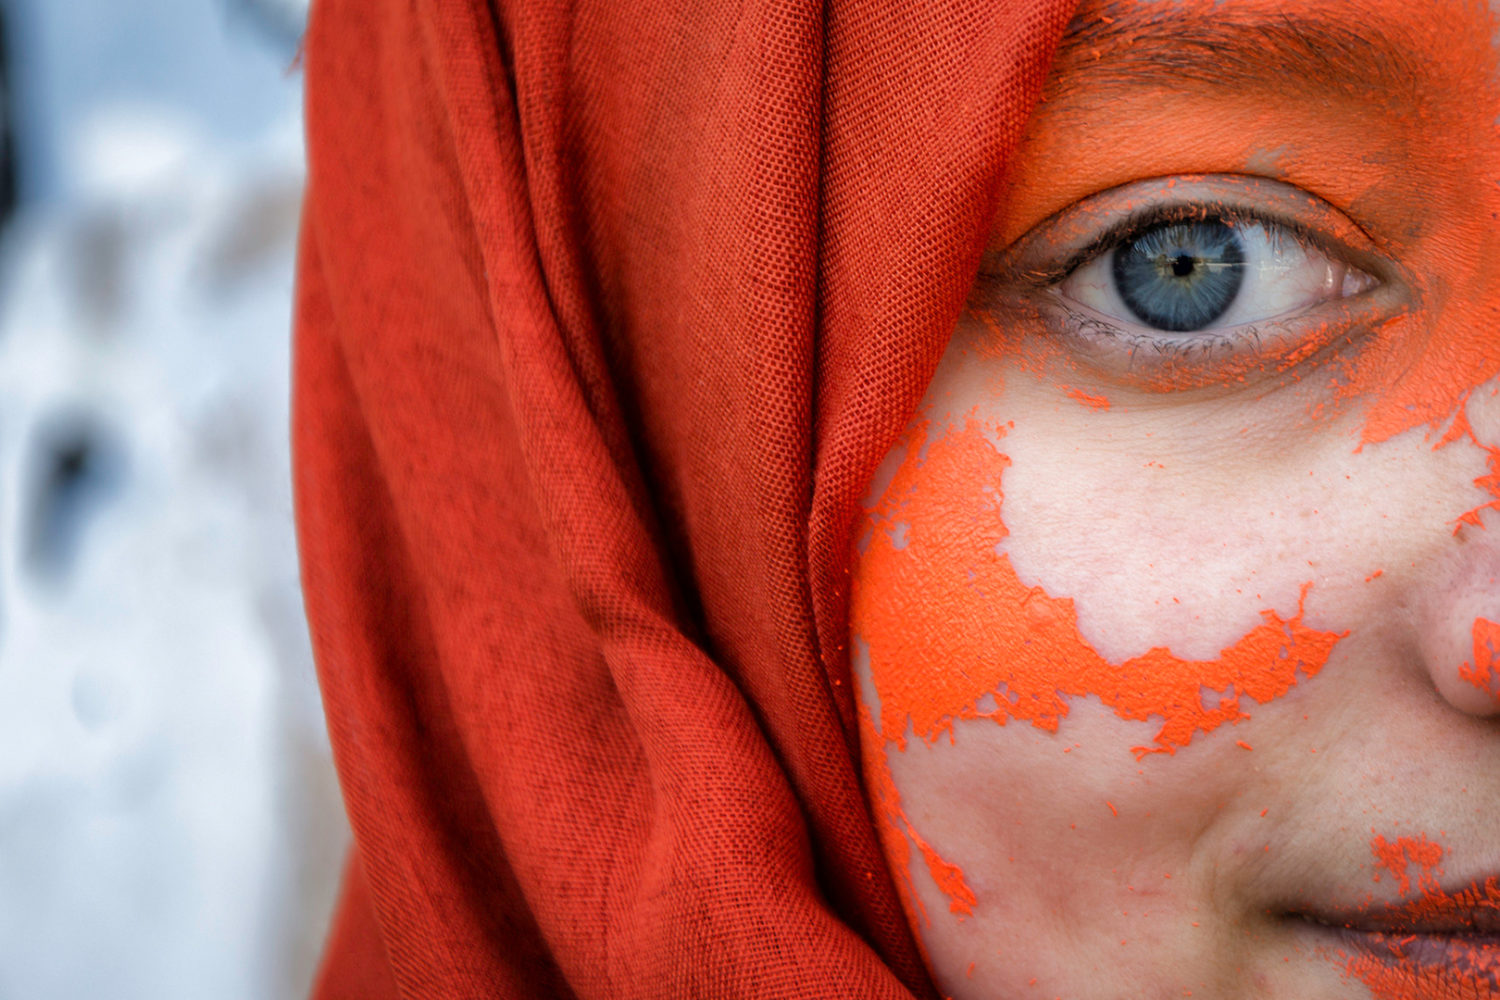 #OrangeTheWorld: 500px Studio's new photo series aims to help end violence against women